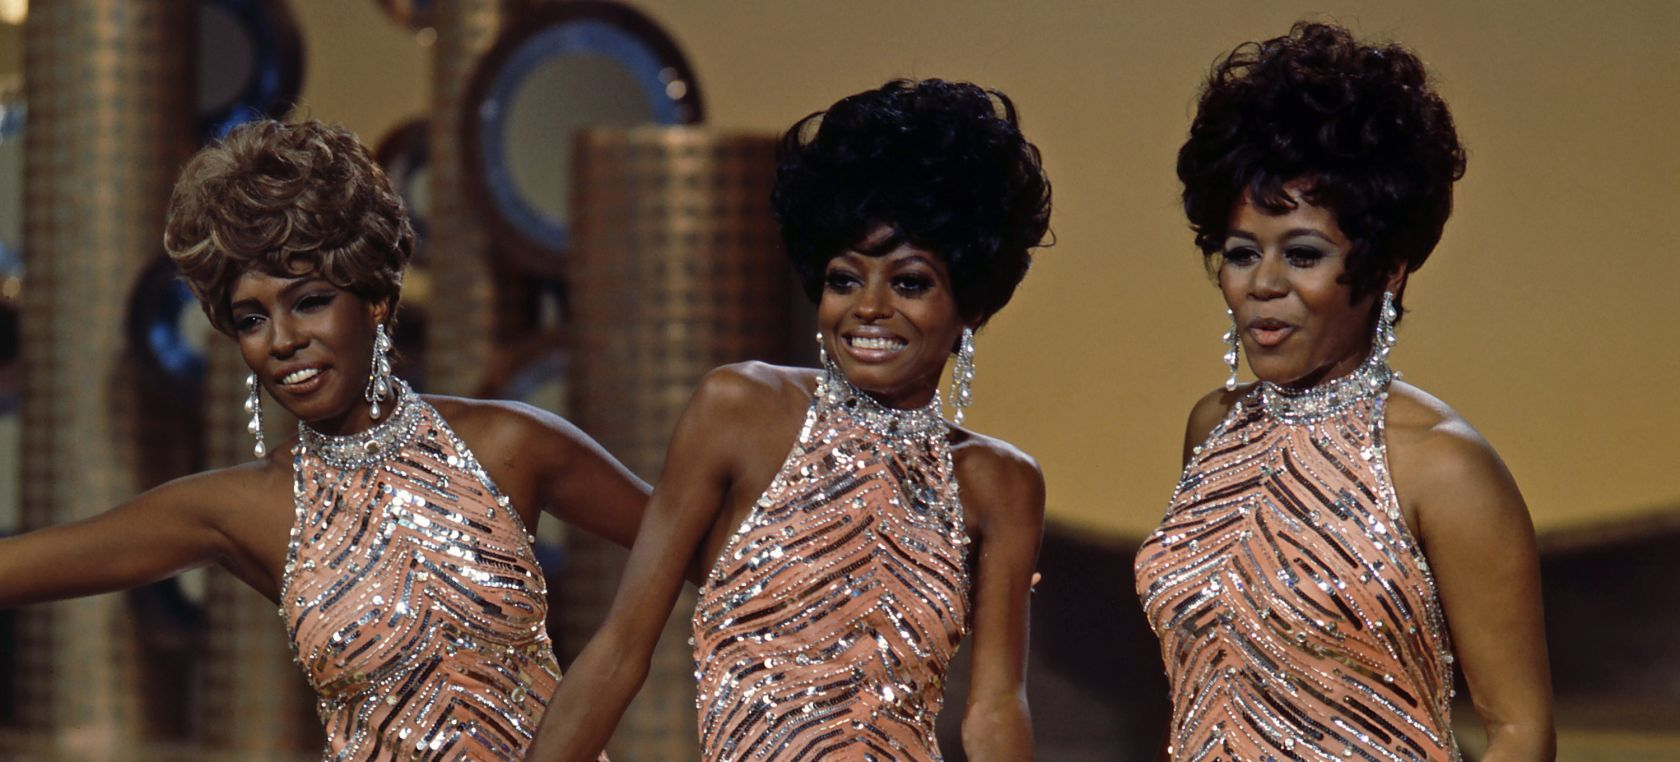 Muere Mary Wilson, cofundadora y vocalista de The Supremes